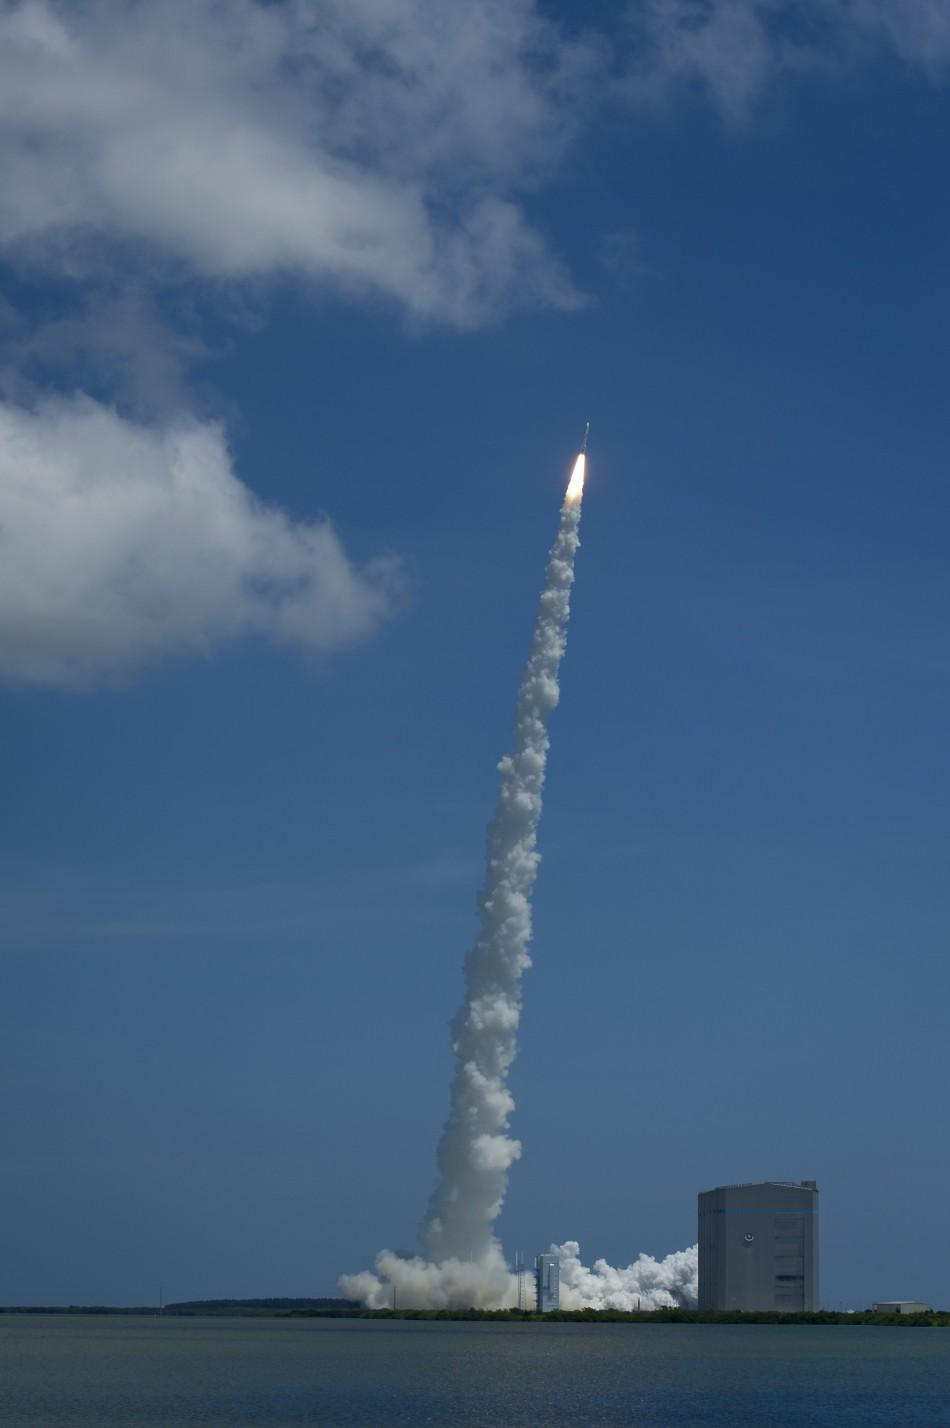 An Atlas V rocket launches with the Juno spacecraft payload from Space Launch Complex 41 at Cape Canaveral Air Force Station in Florida